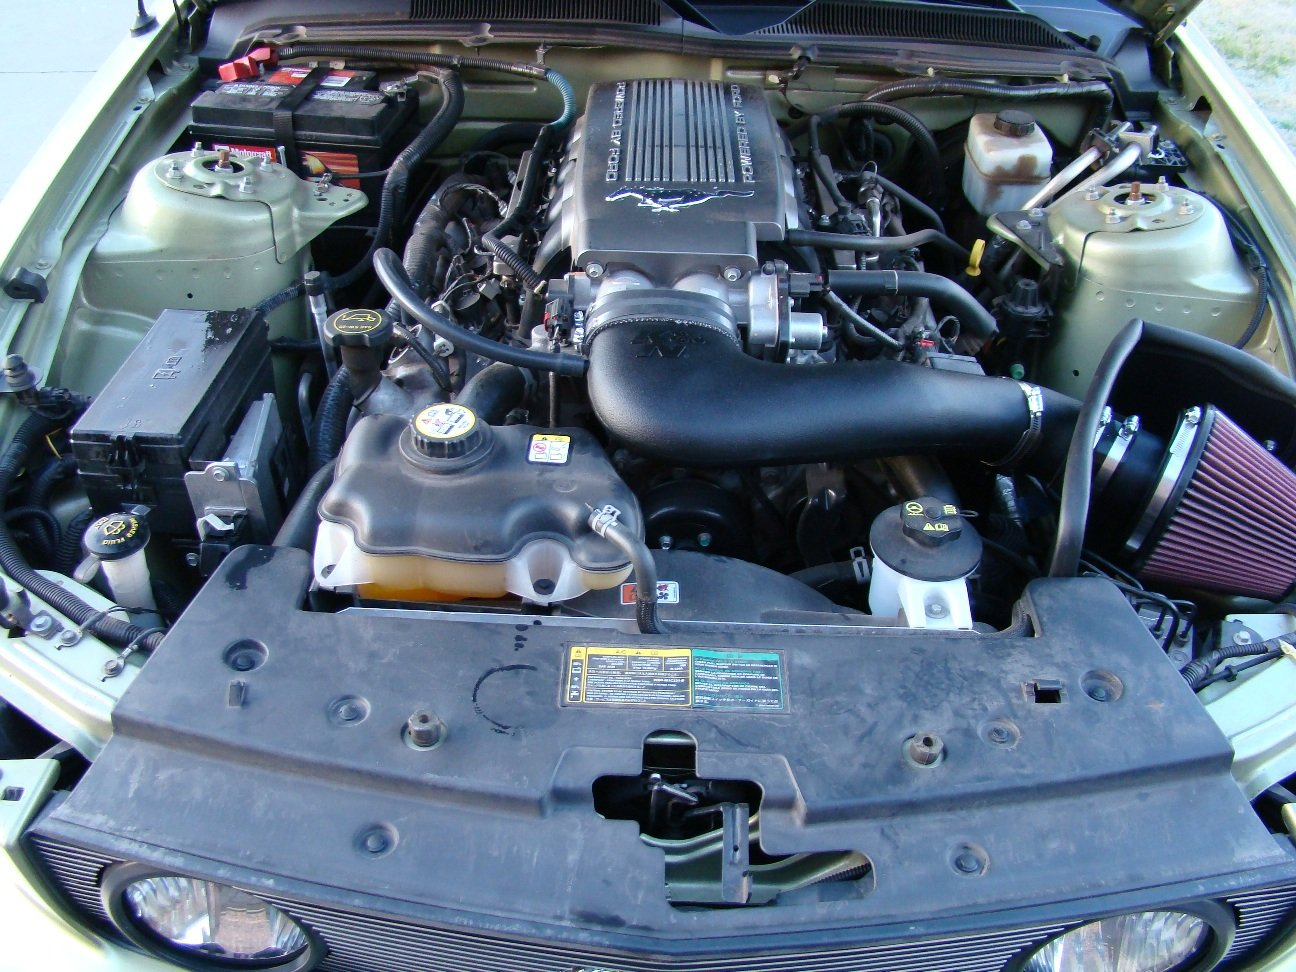 2008 Ford Mustang Gt Premium >> Engine Bay Cleaning - Ford Mustang Forum